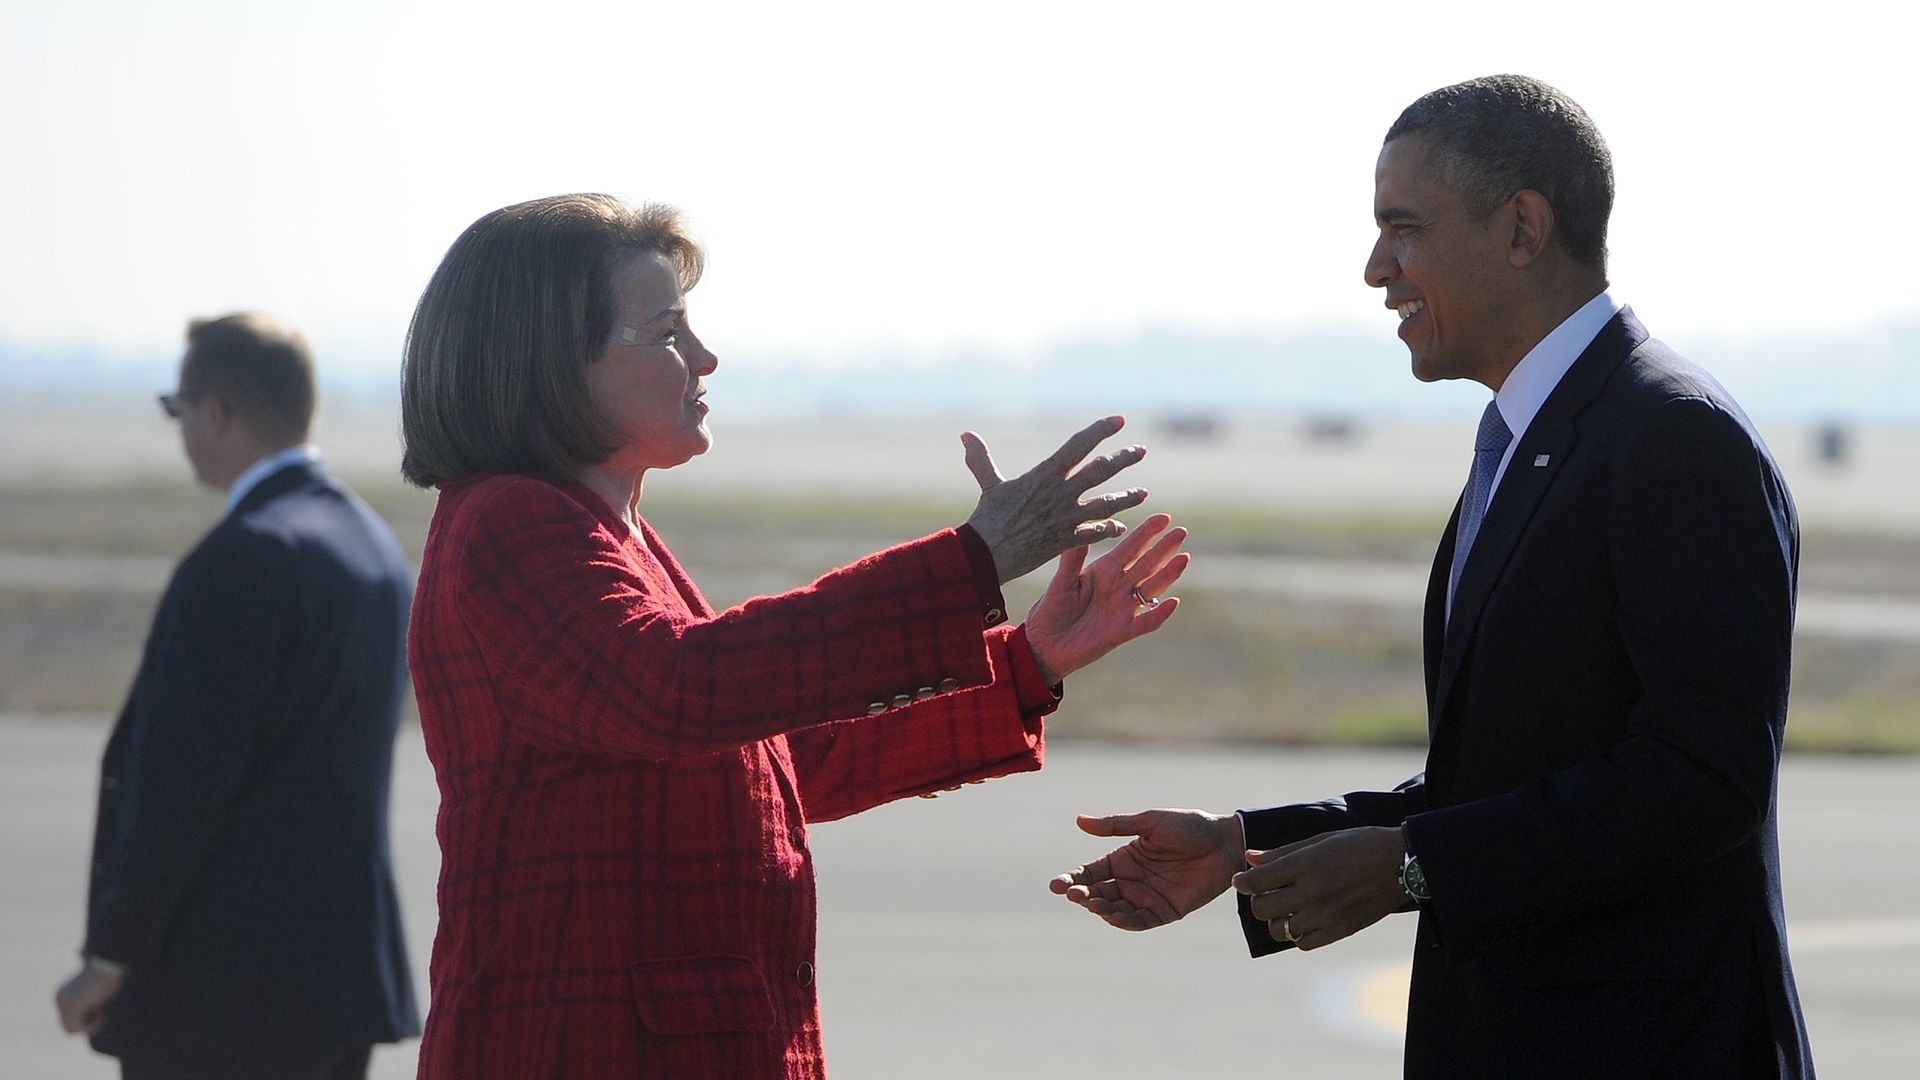 Dianne Feinstein moves to embrace Barack Obama on a tarmac